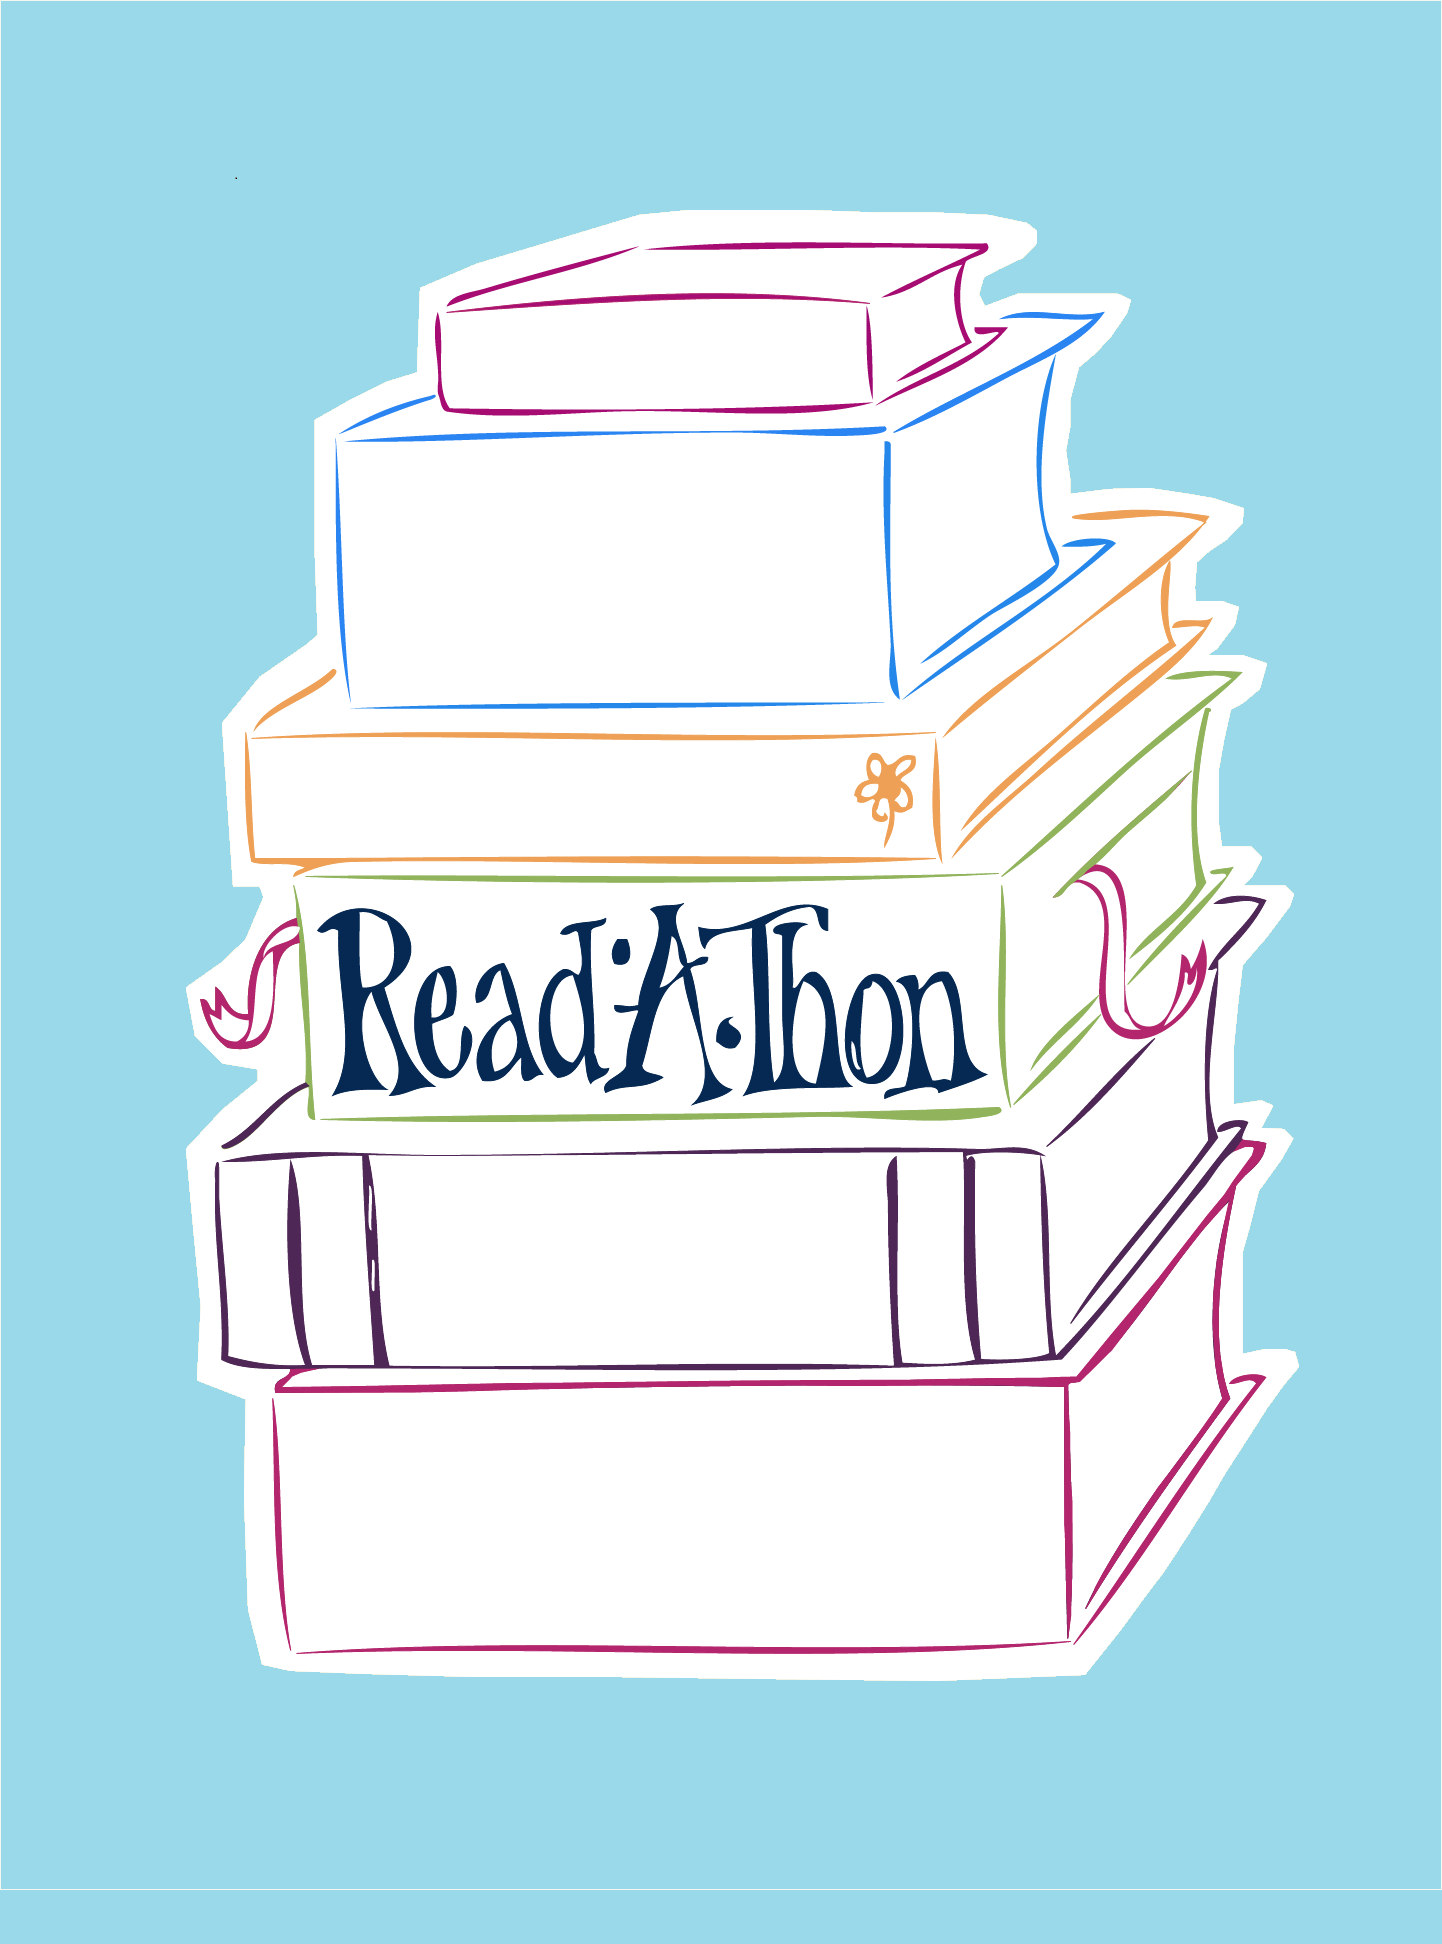 Details on Read-a-thon, click here!